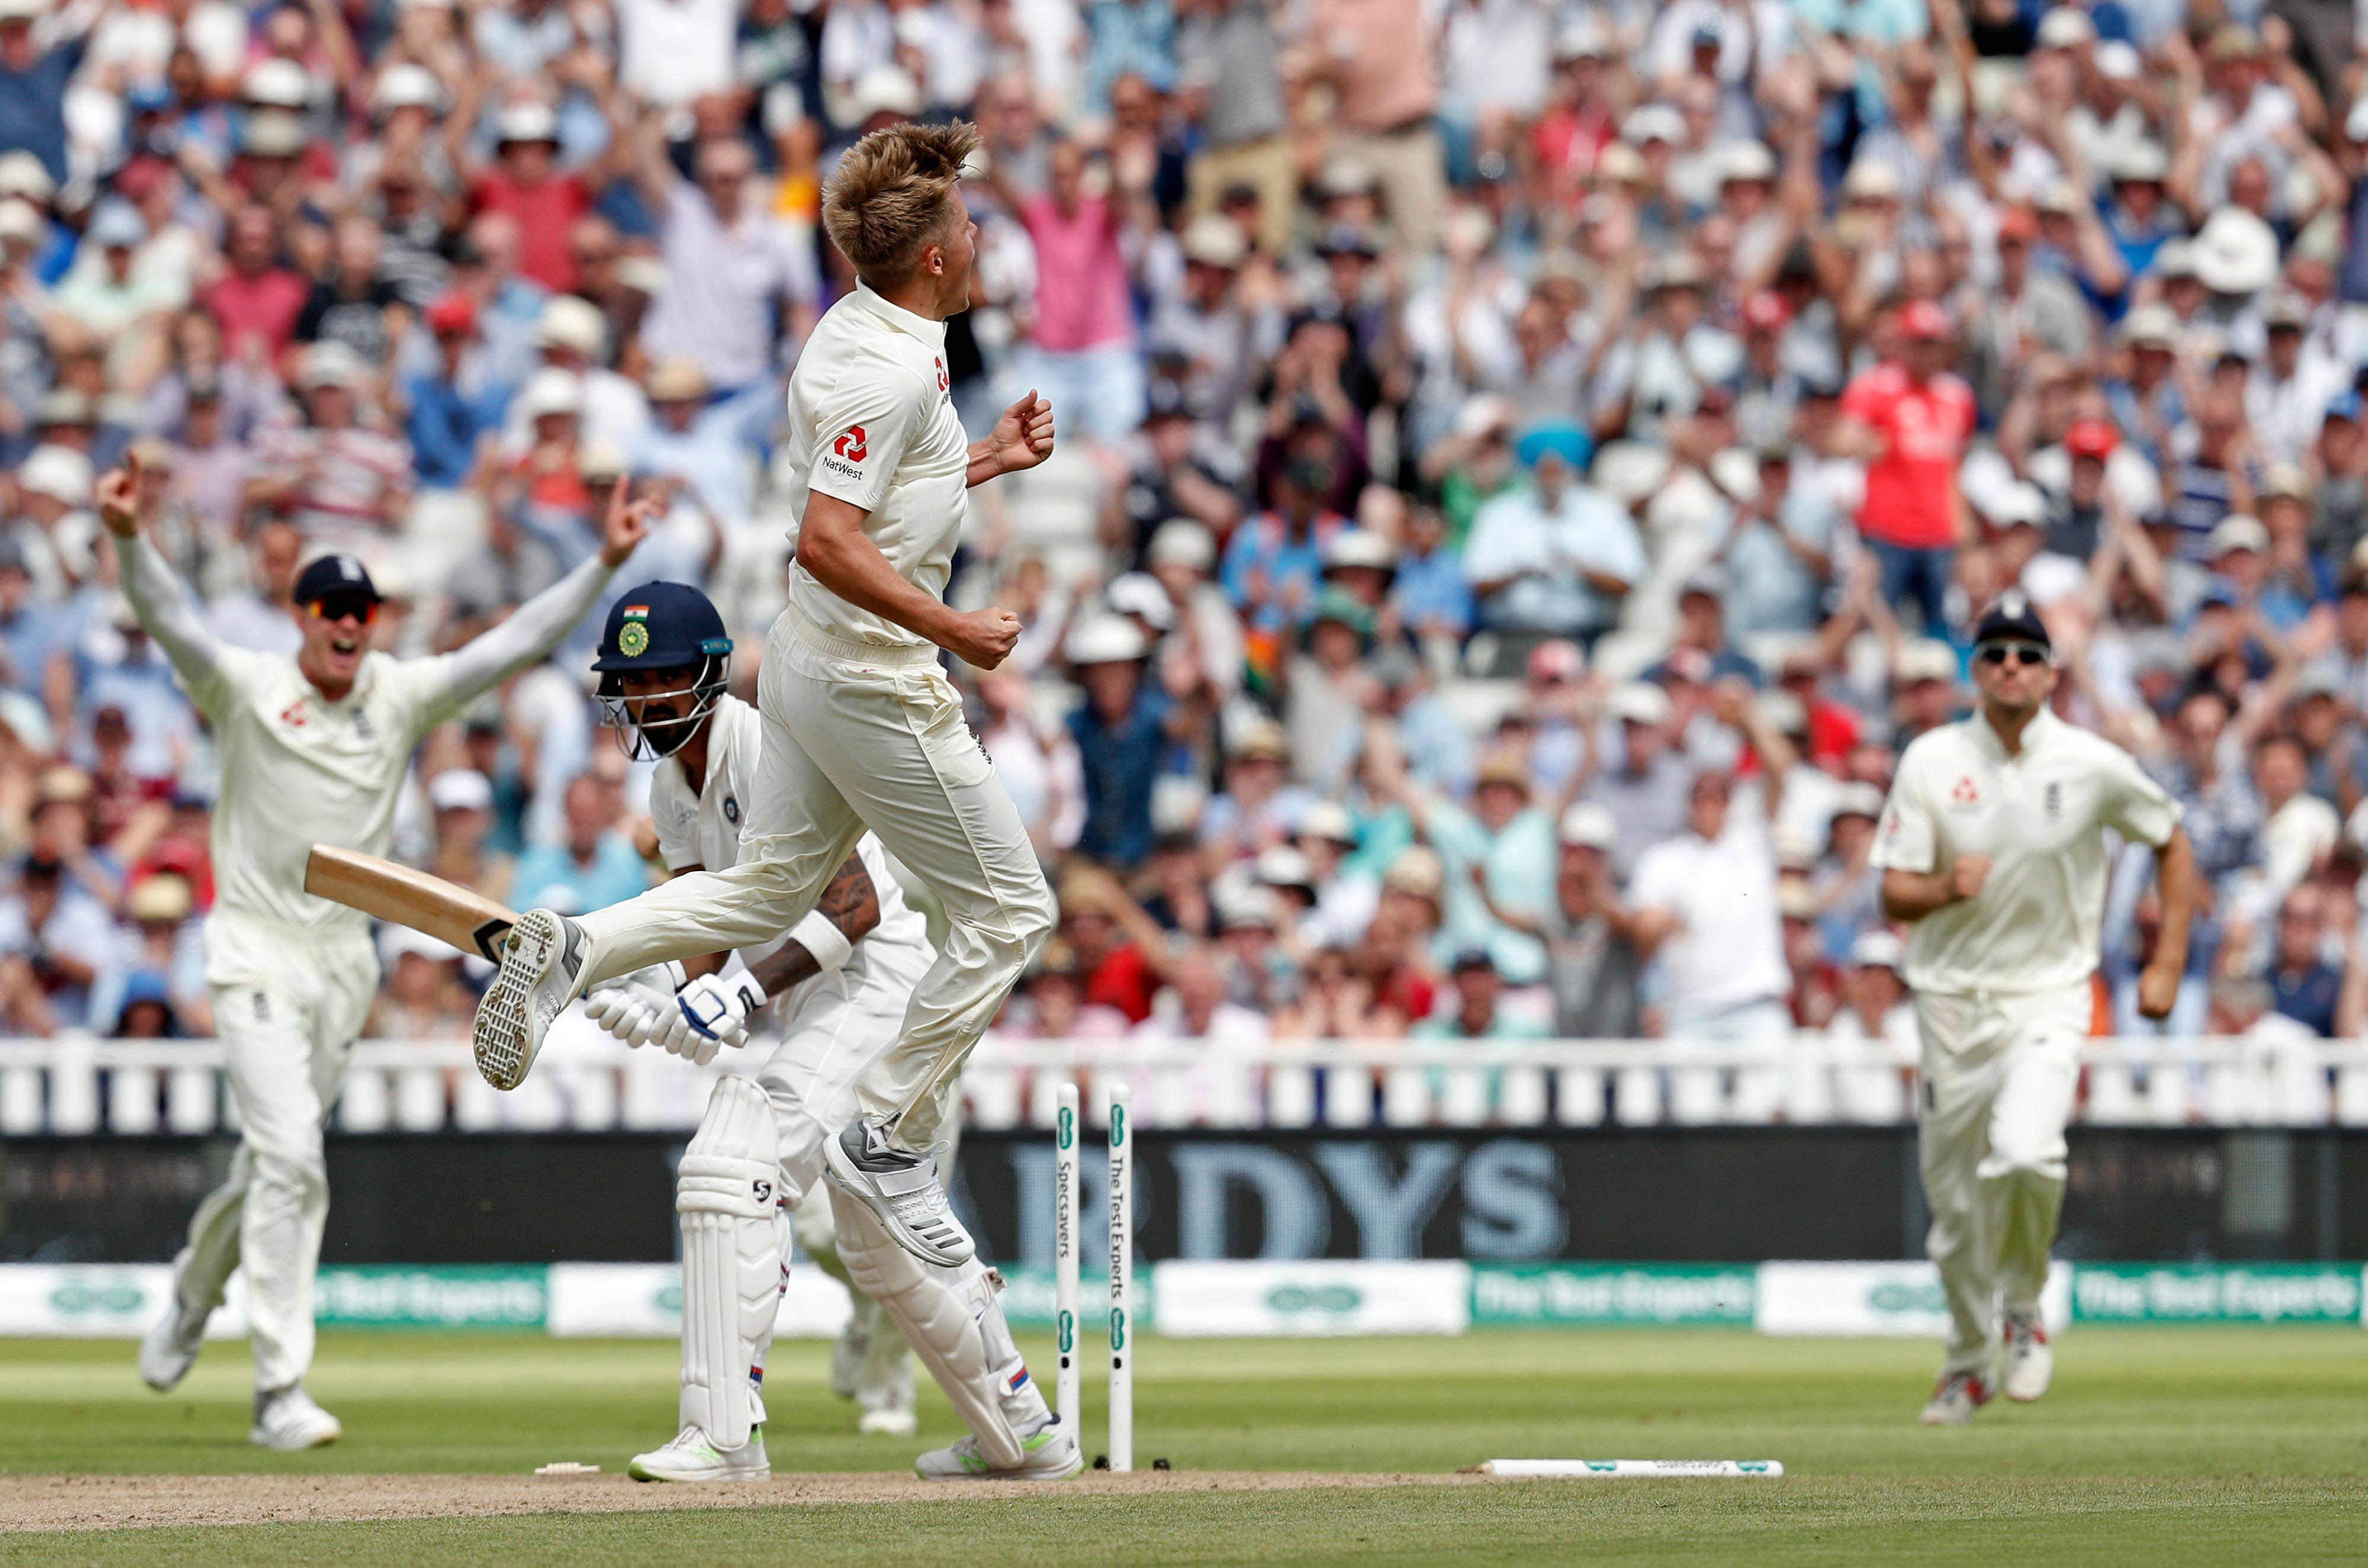 Sam Curran was in dreamland as he picked up wicket after wicket